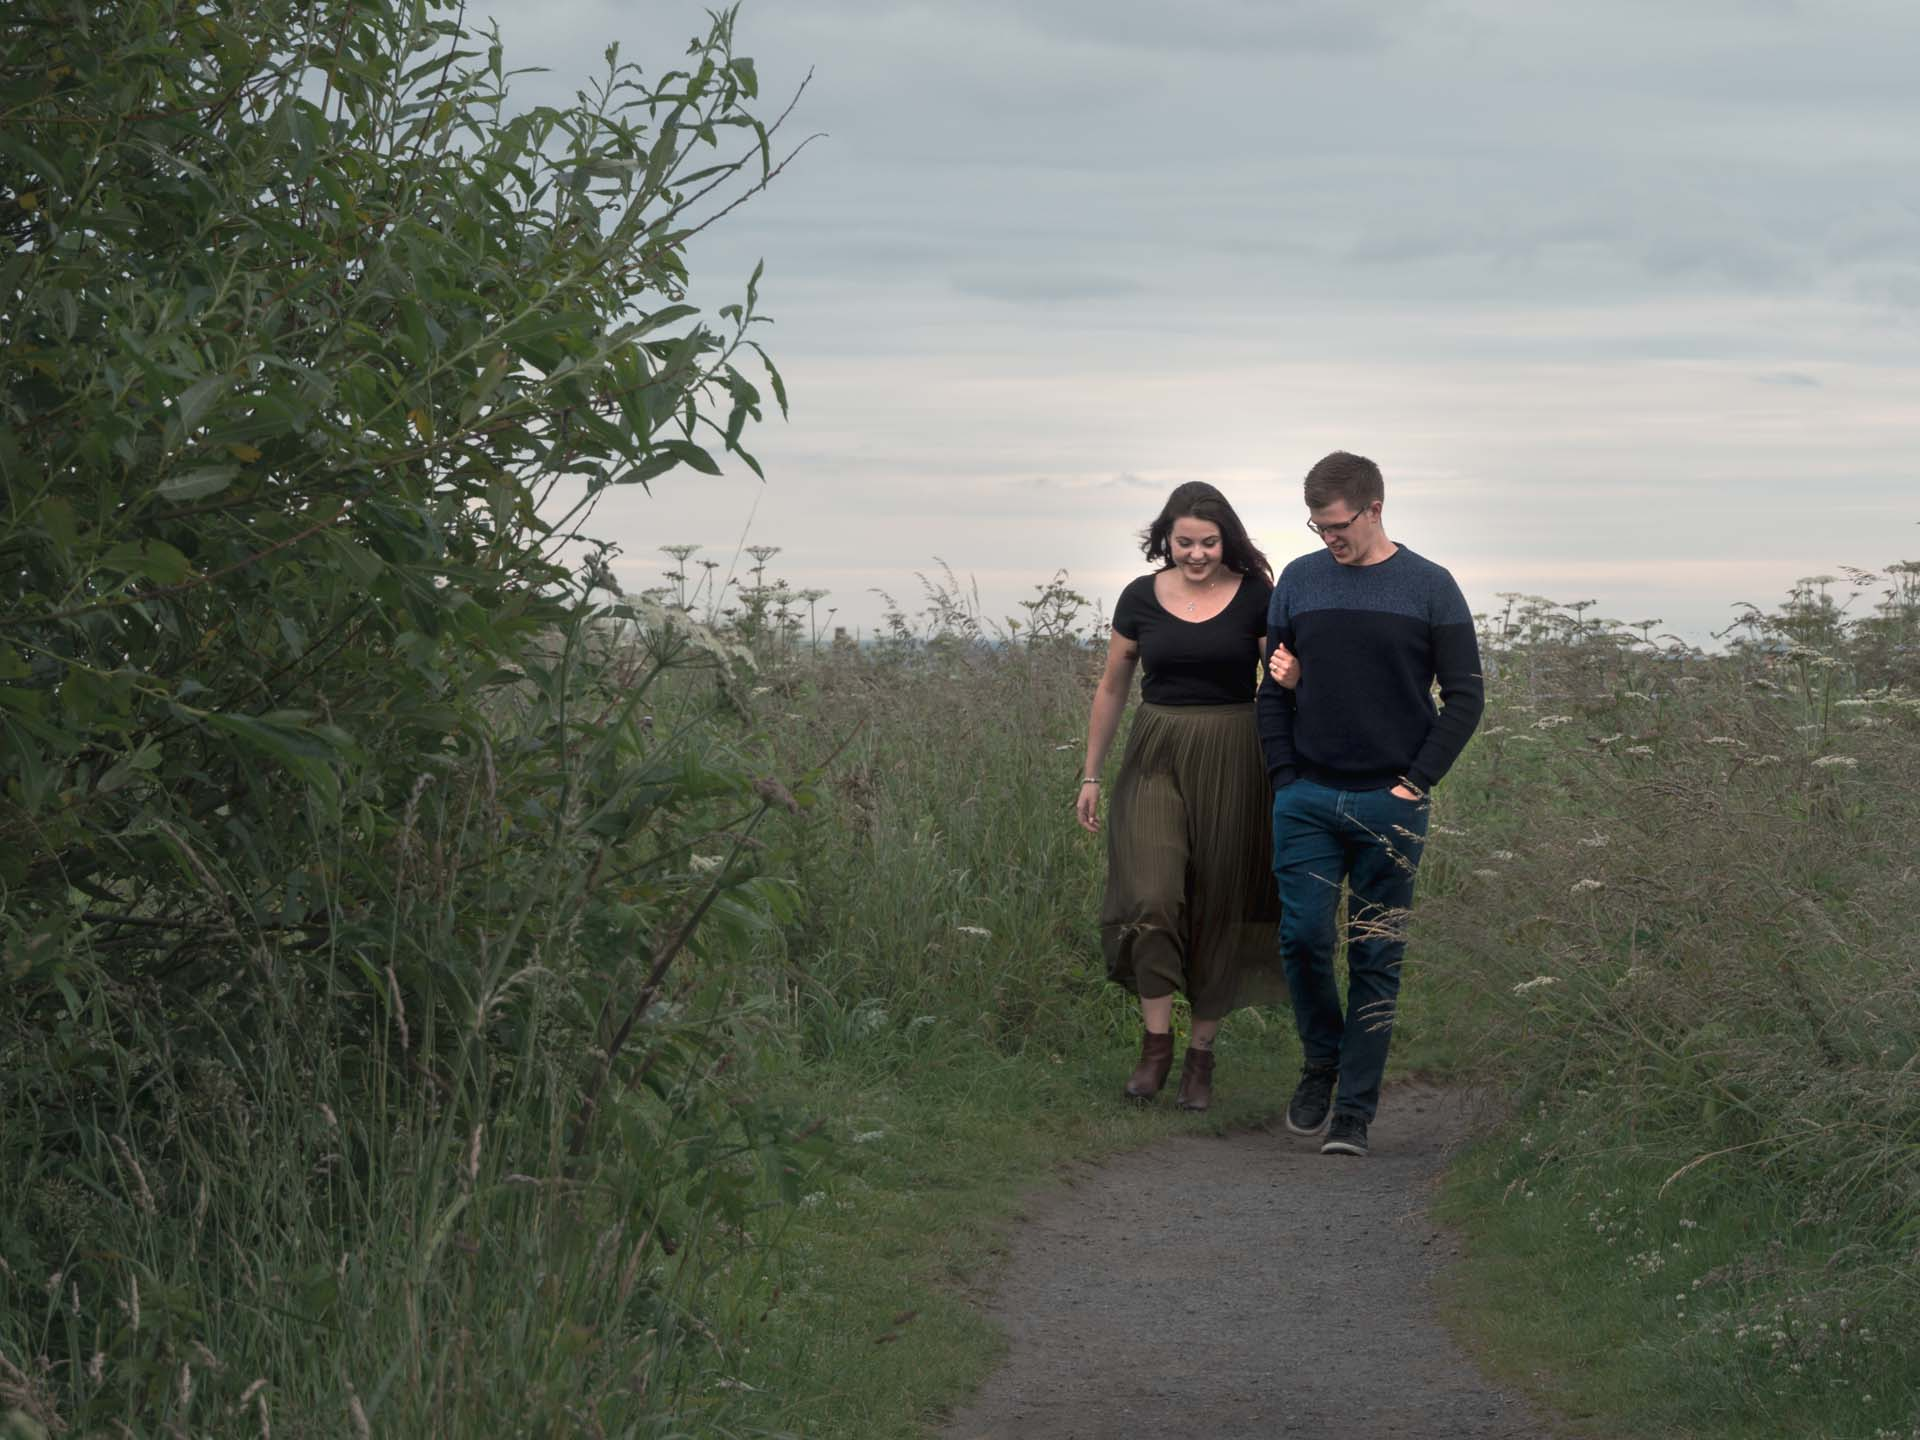 Weddings and Romantic Moments Photography. A young couple walk down a country path,